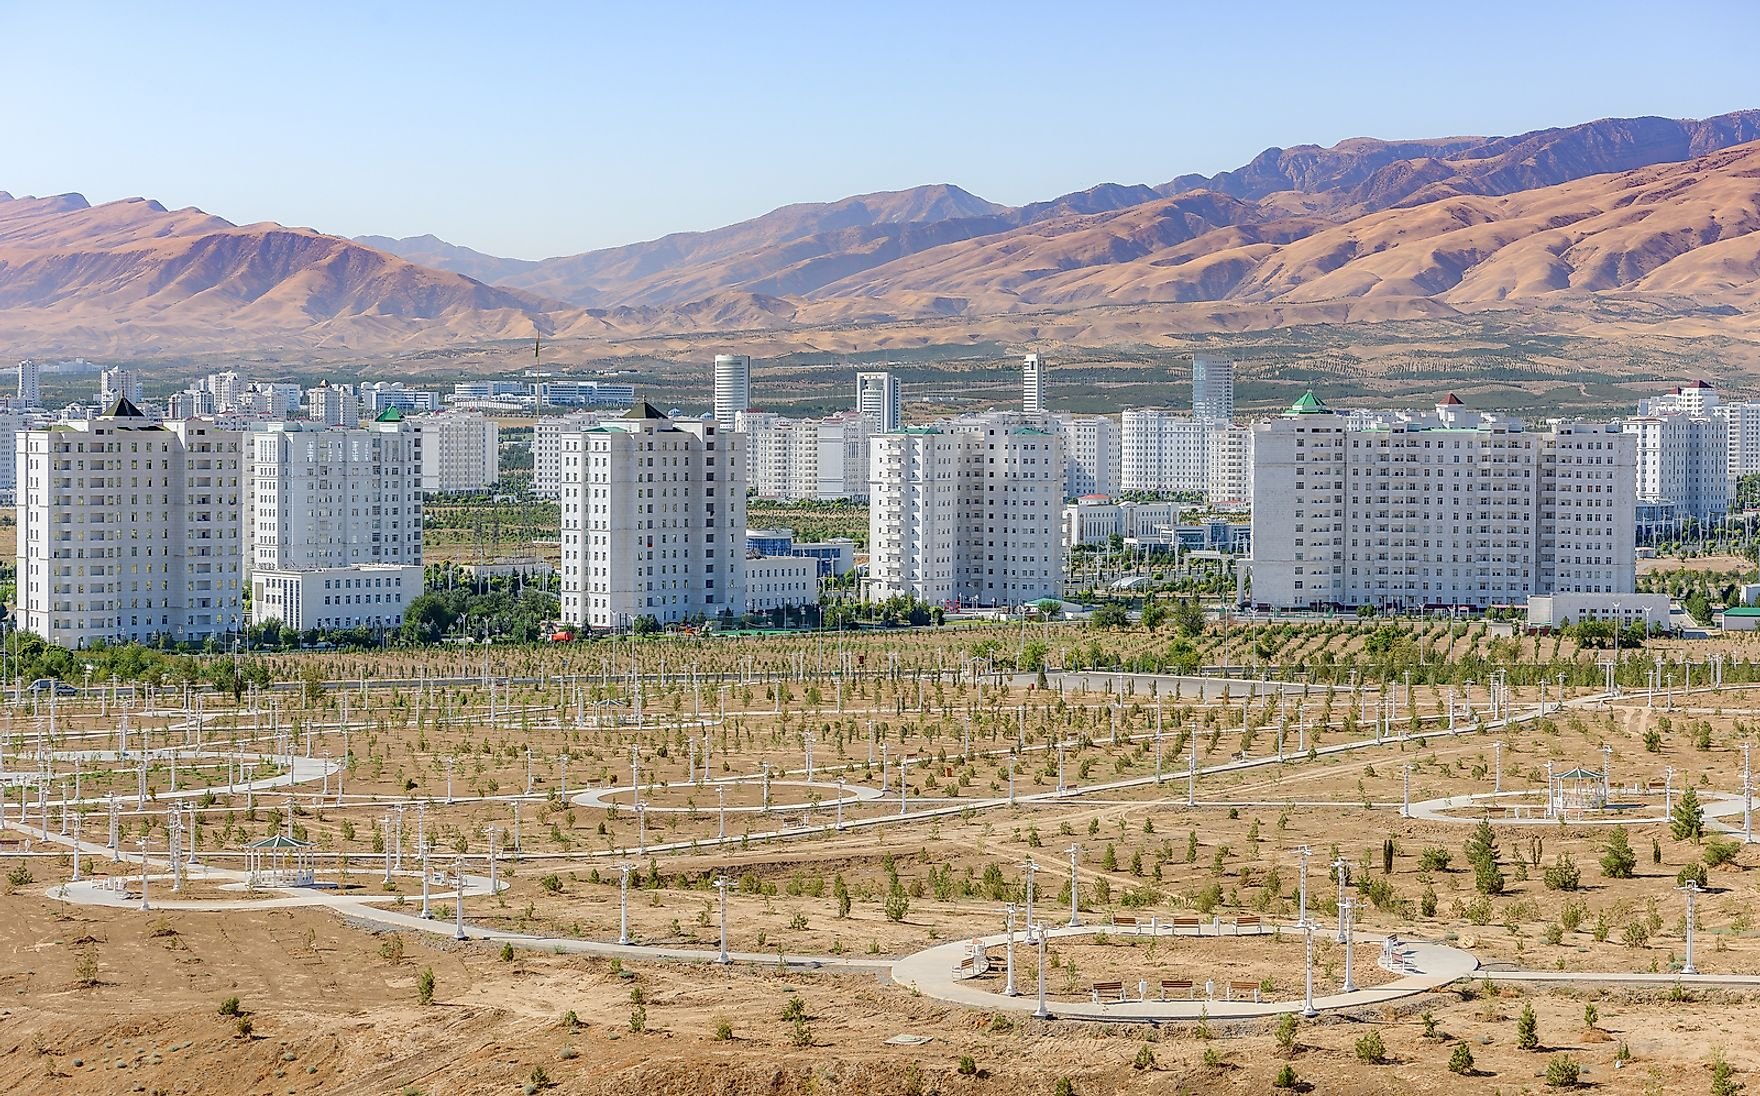 Many buildings in Ashgabat are reminiscent of old Soviet blocks, except made of marble.